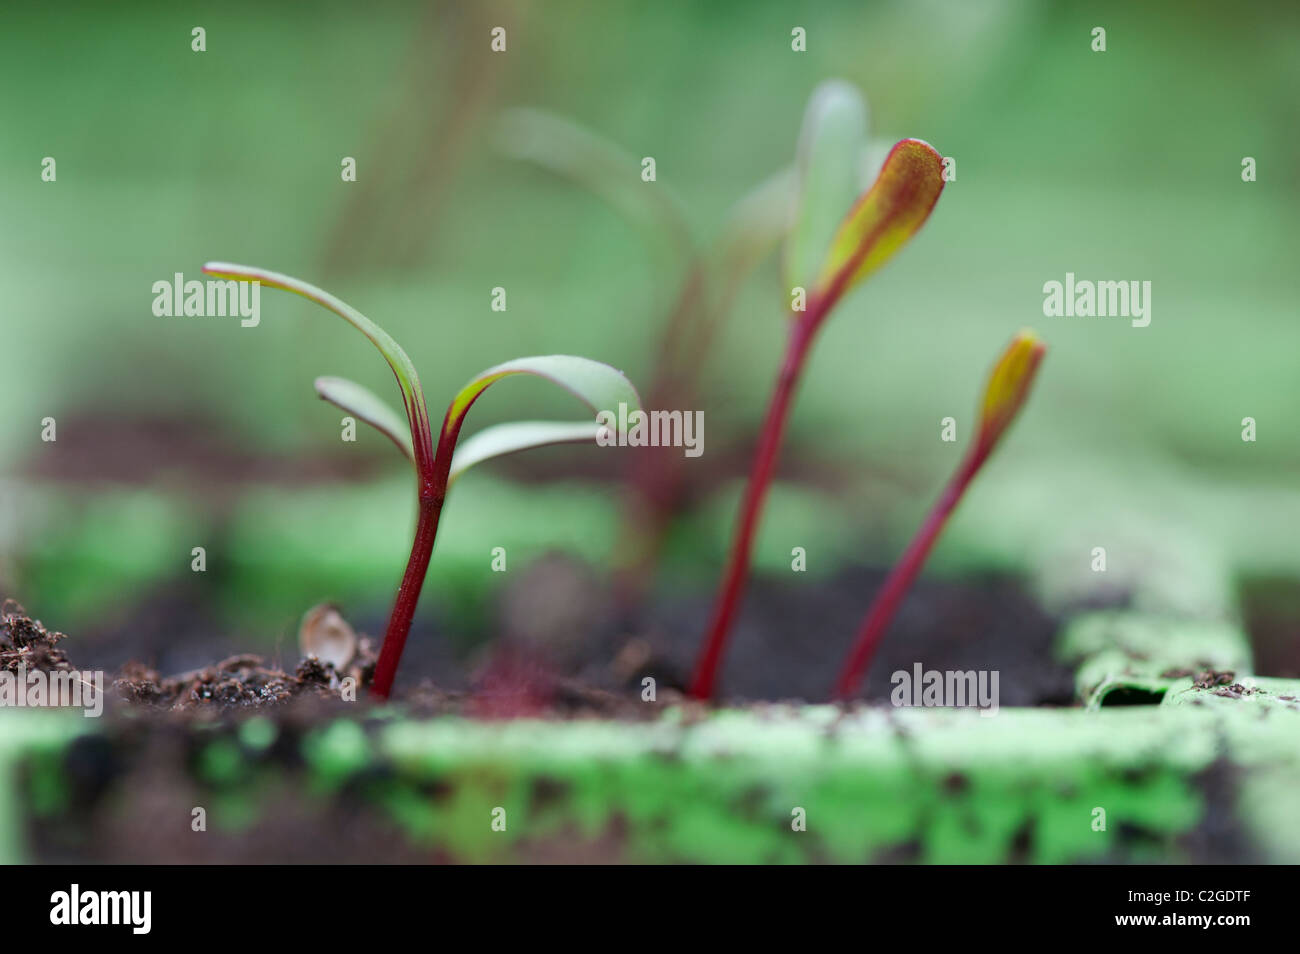 Beta vulgaris. Cultivating Beetroot seedlings - Stock Image